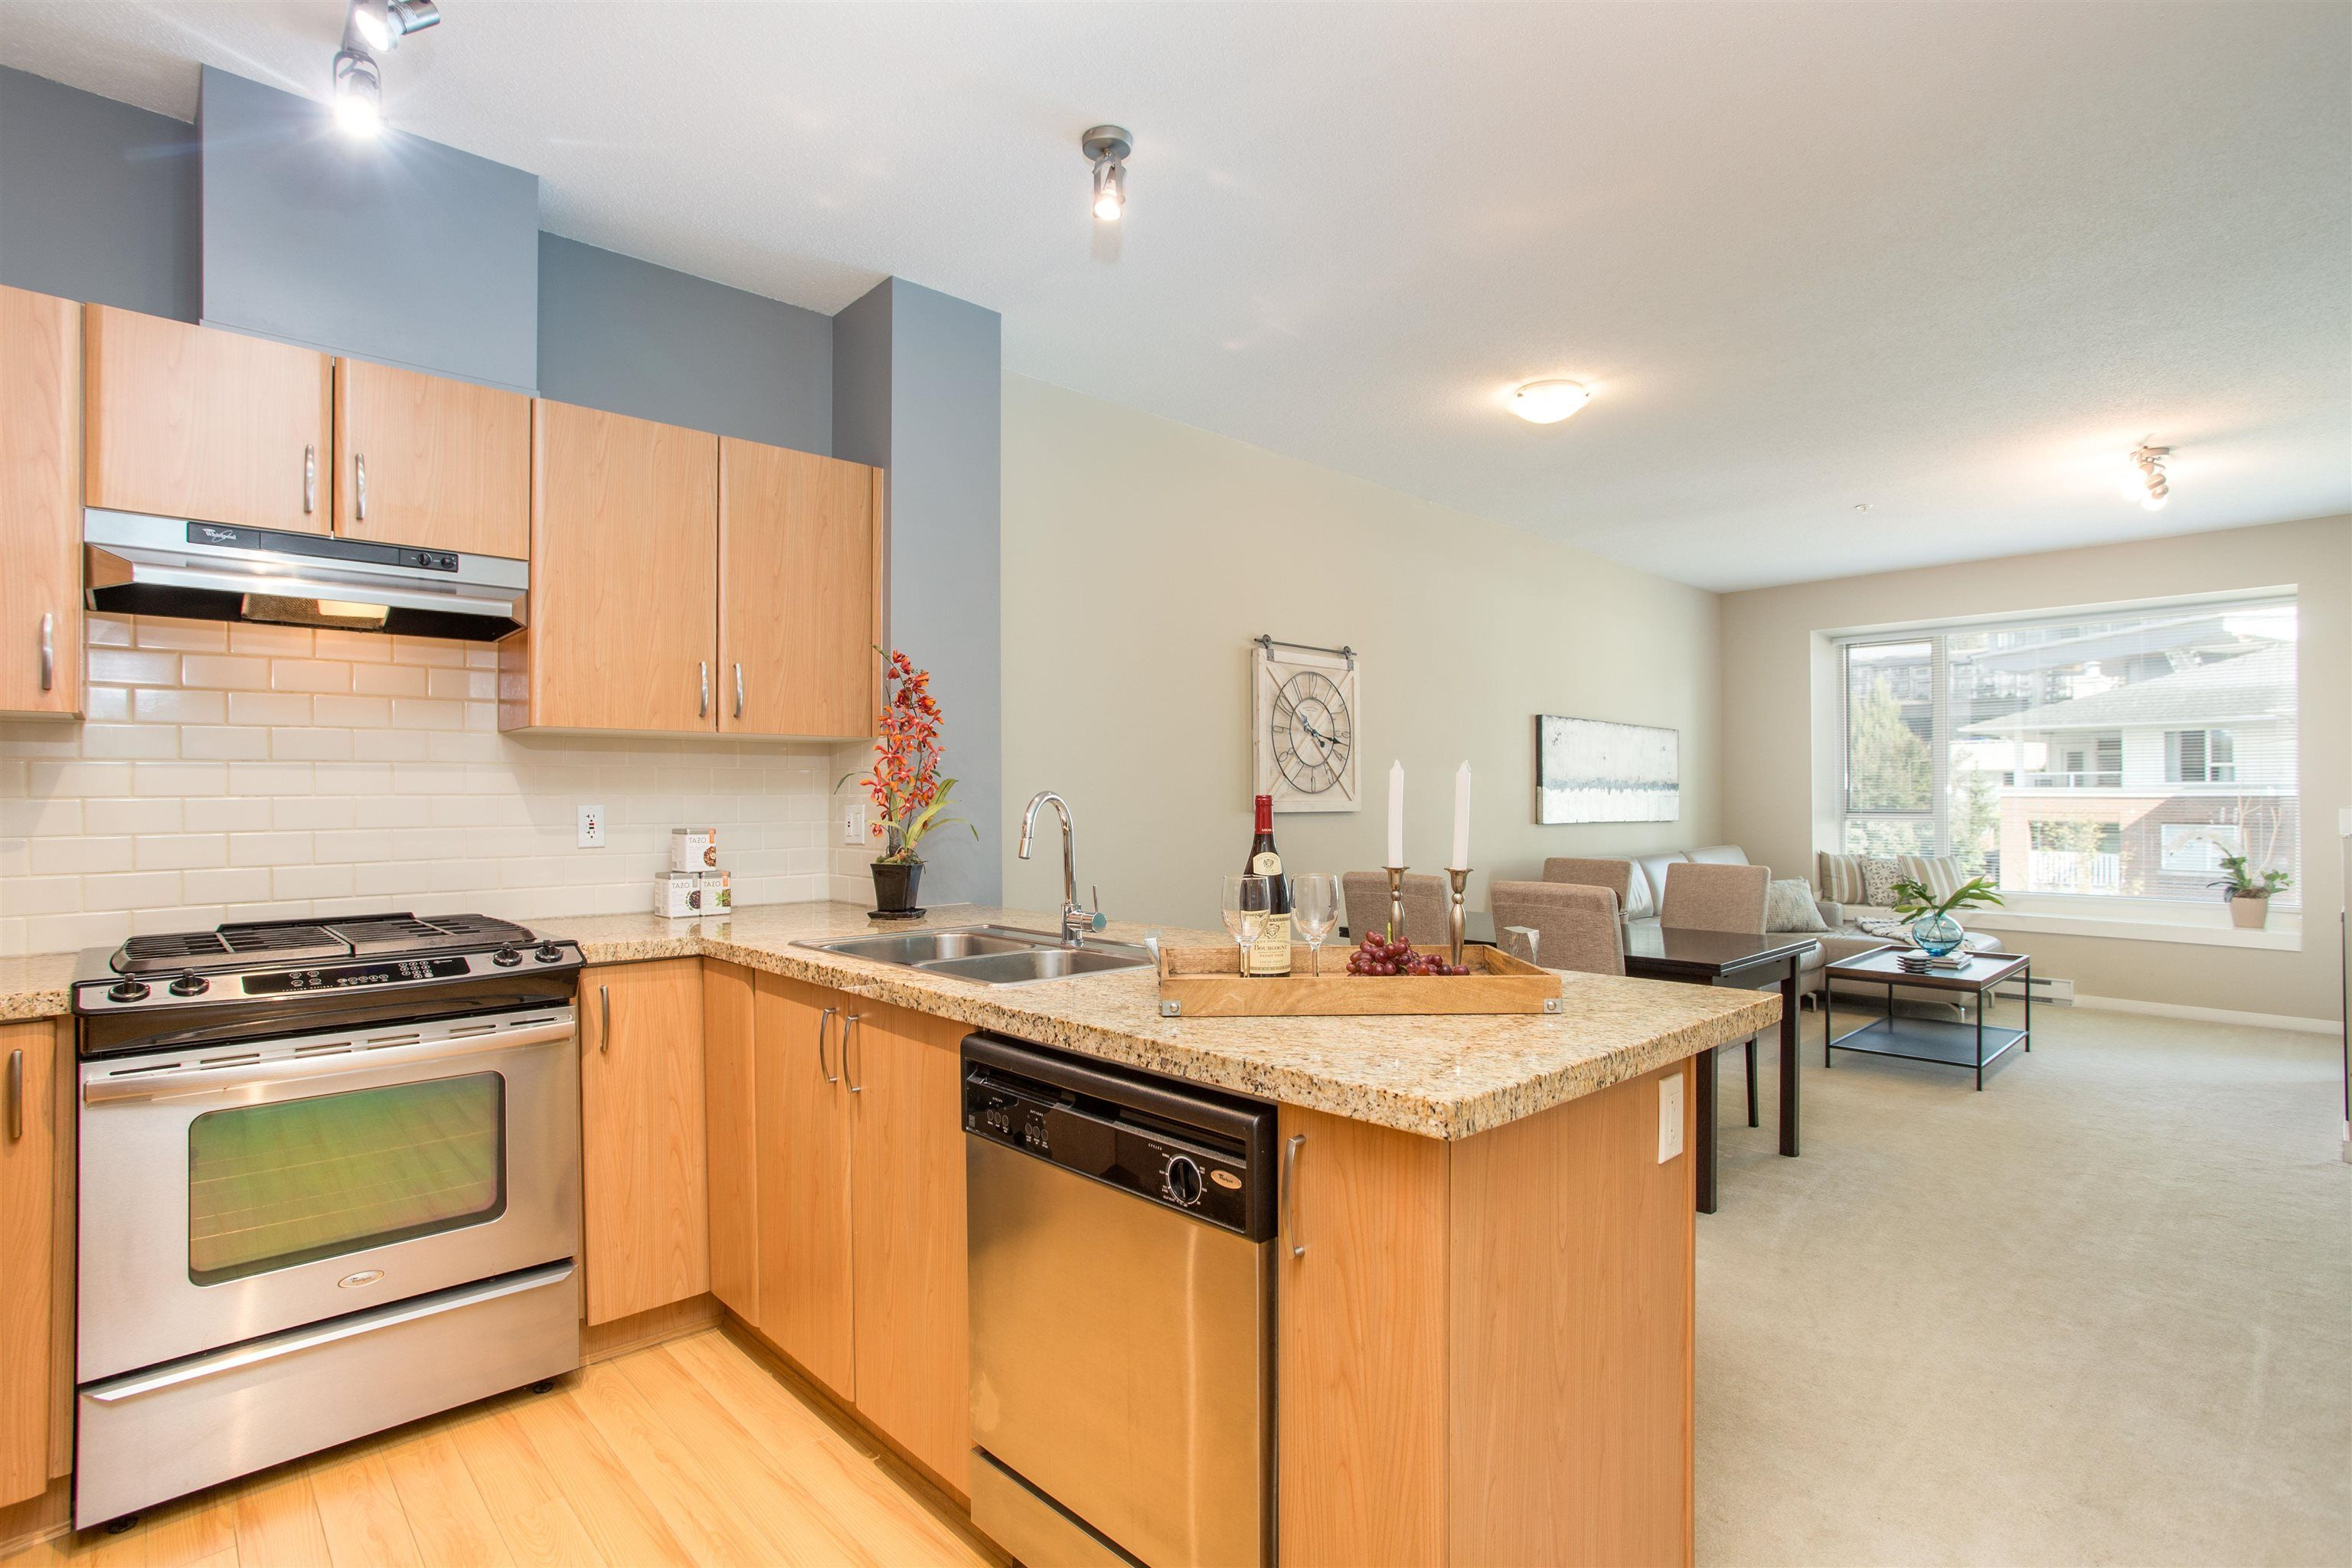 """Main Photo: 415 4728 DAWSON Street in Burnaby: Brentwood Park Condo for sale in """"Montage"""" (Burnaby North)  : MLS®# R2617965"""